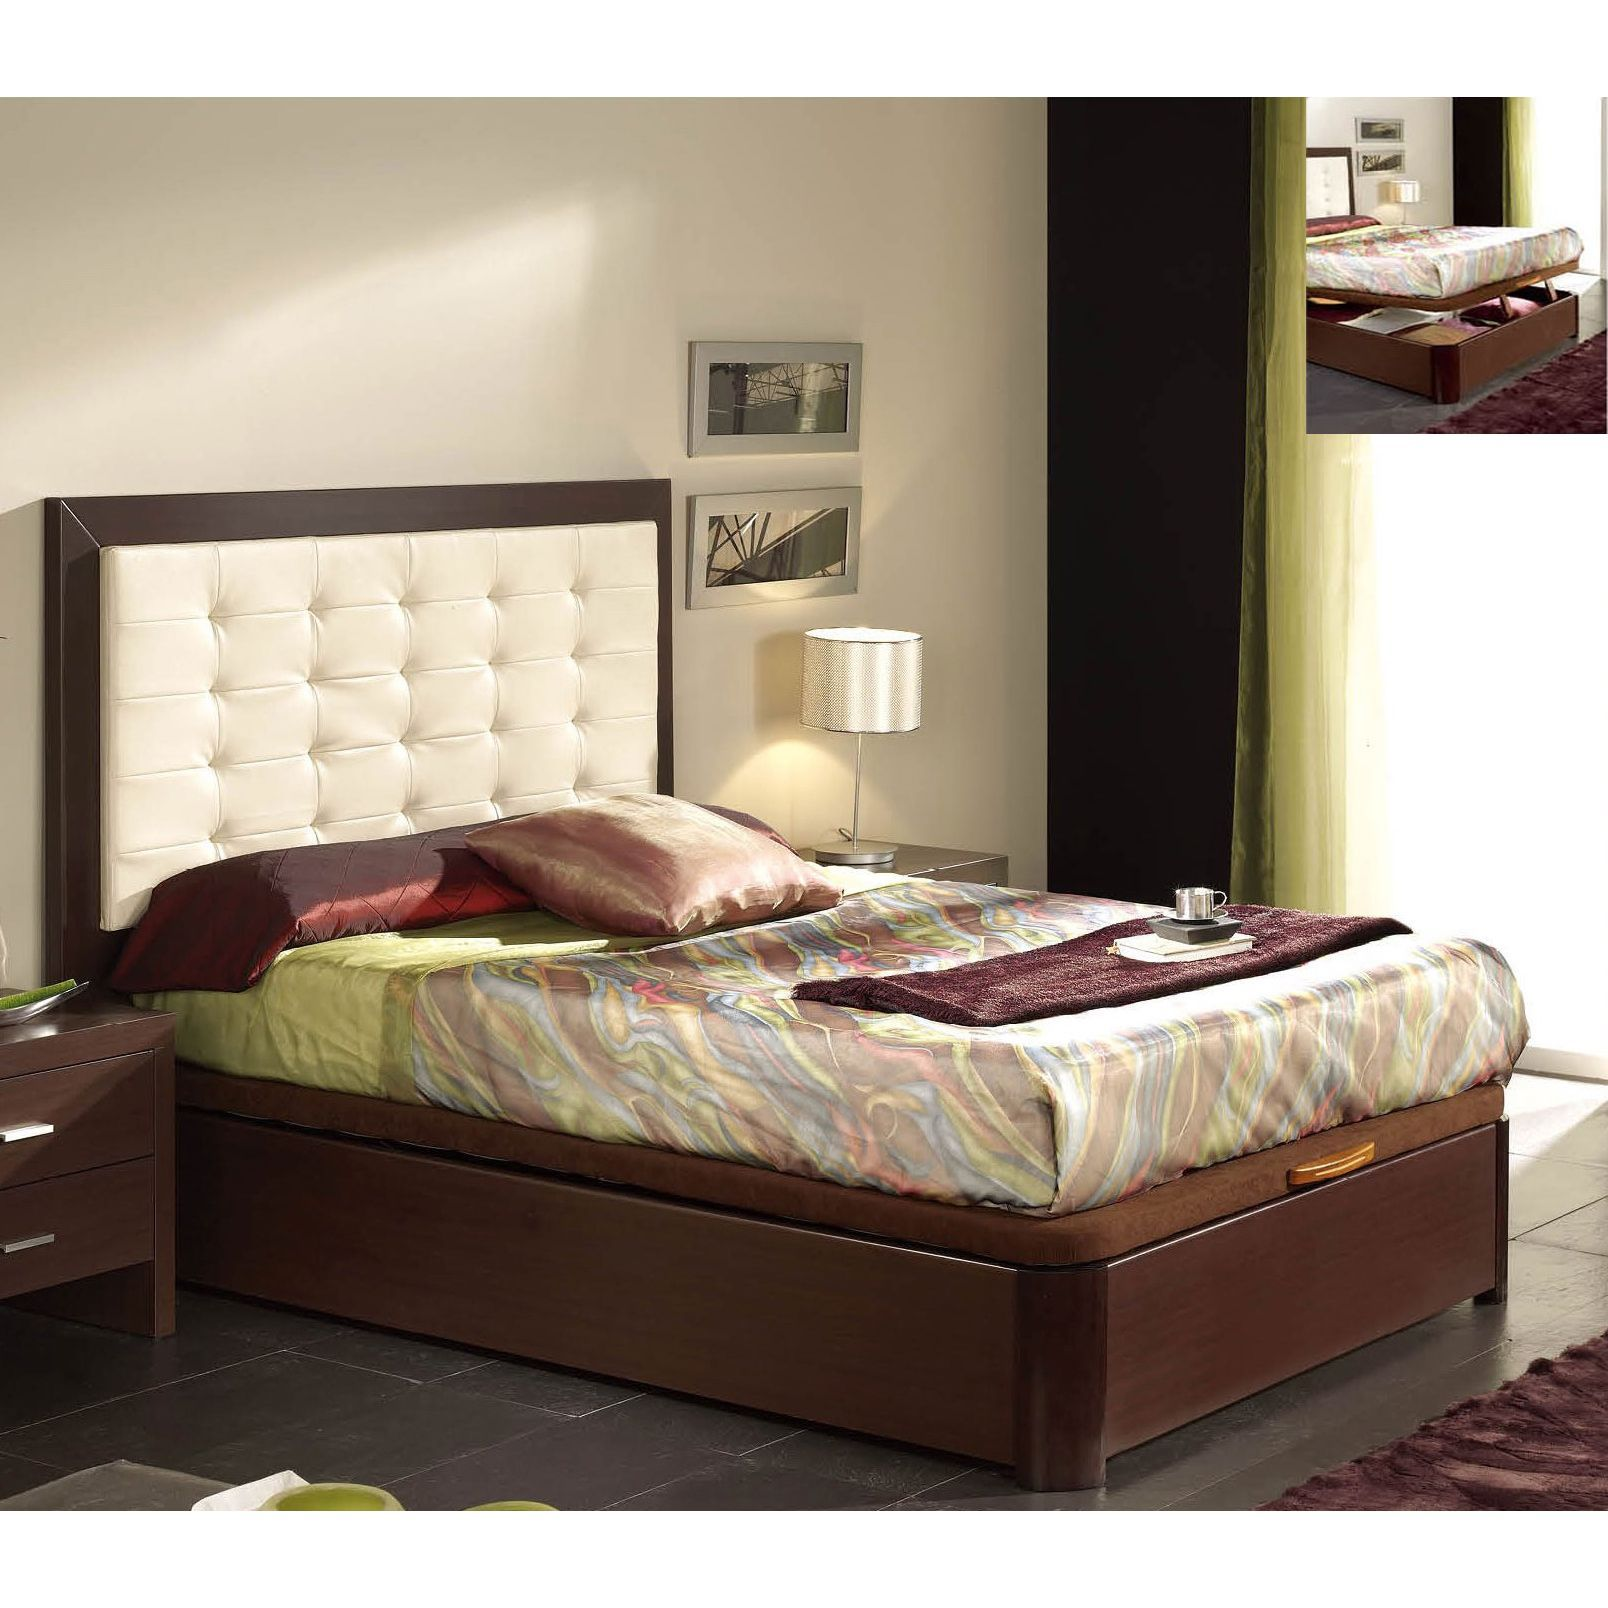 Schlafzimmer Set Luca Luca Home Queen Platform Storage Bed Cherry Cherry Finish Red